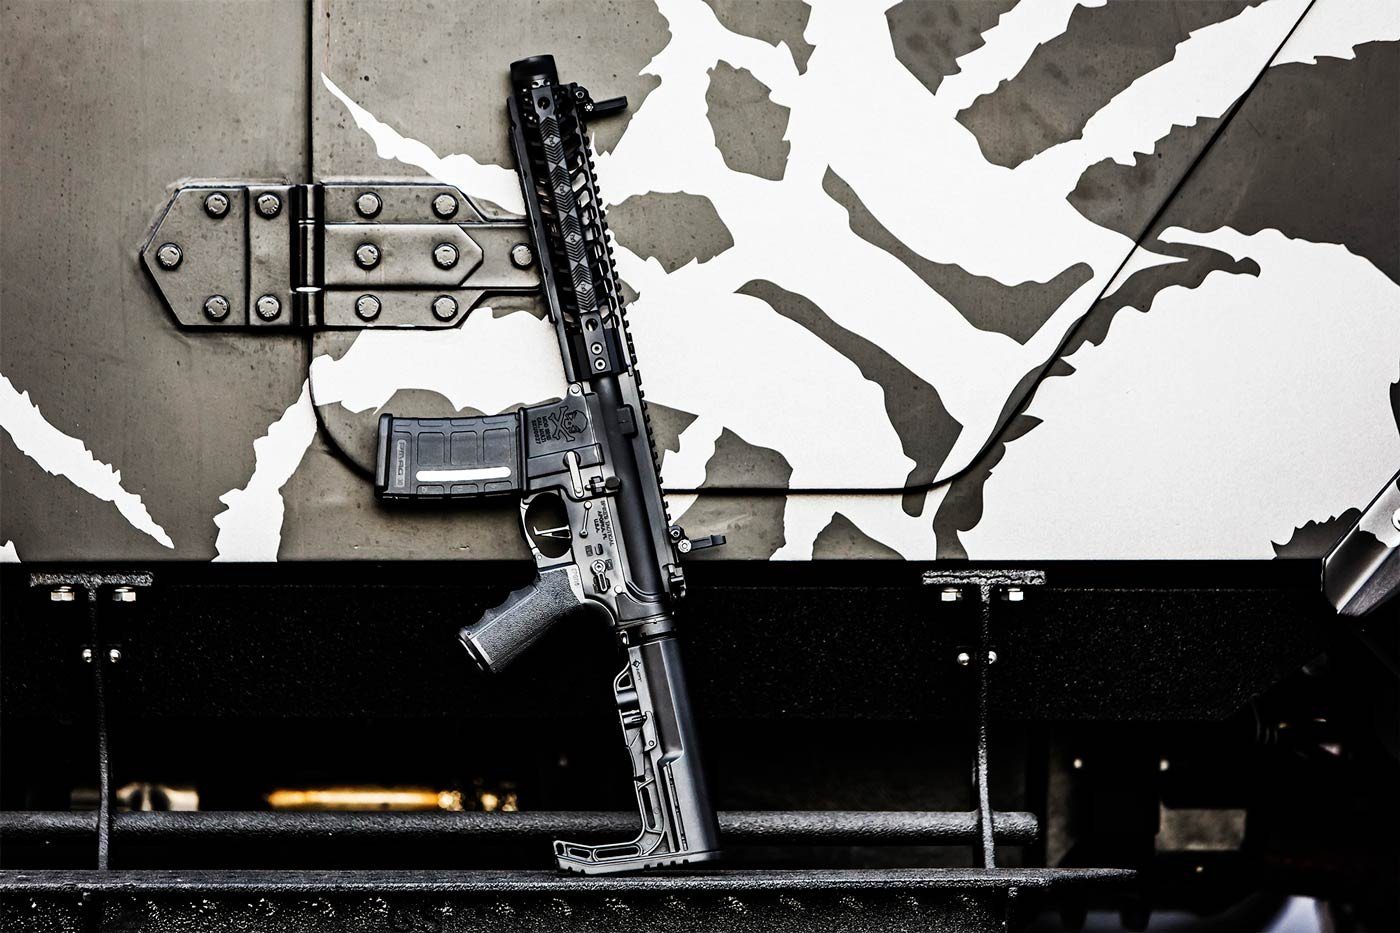 Spike's Tactical SBR